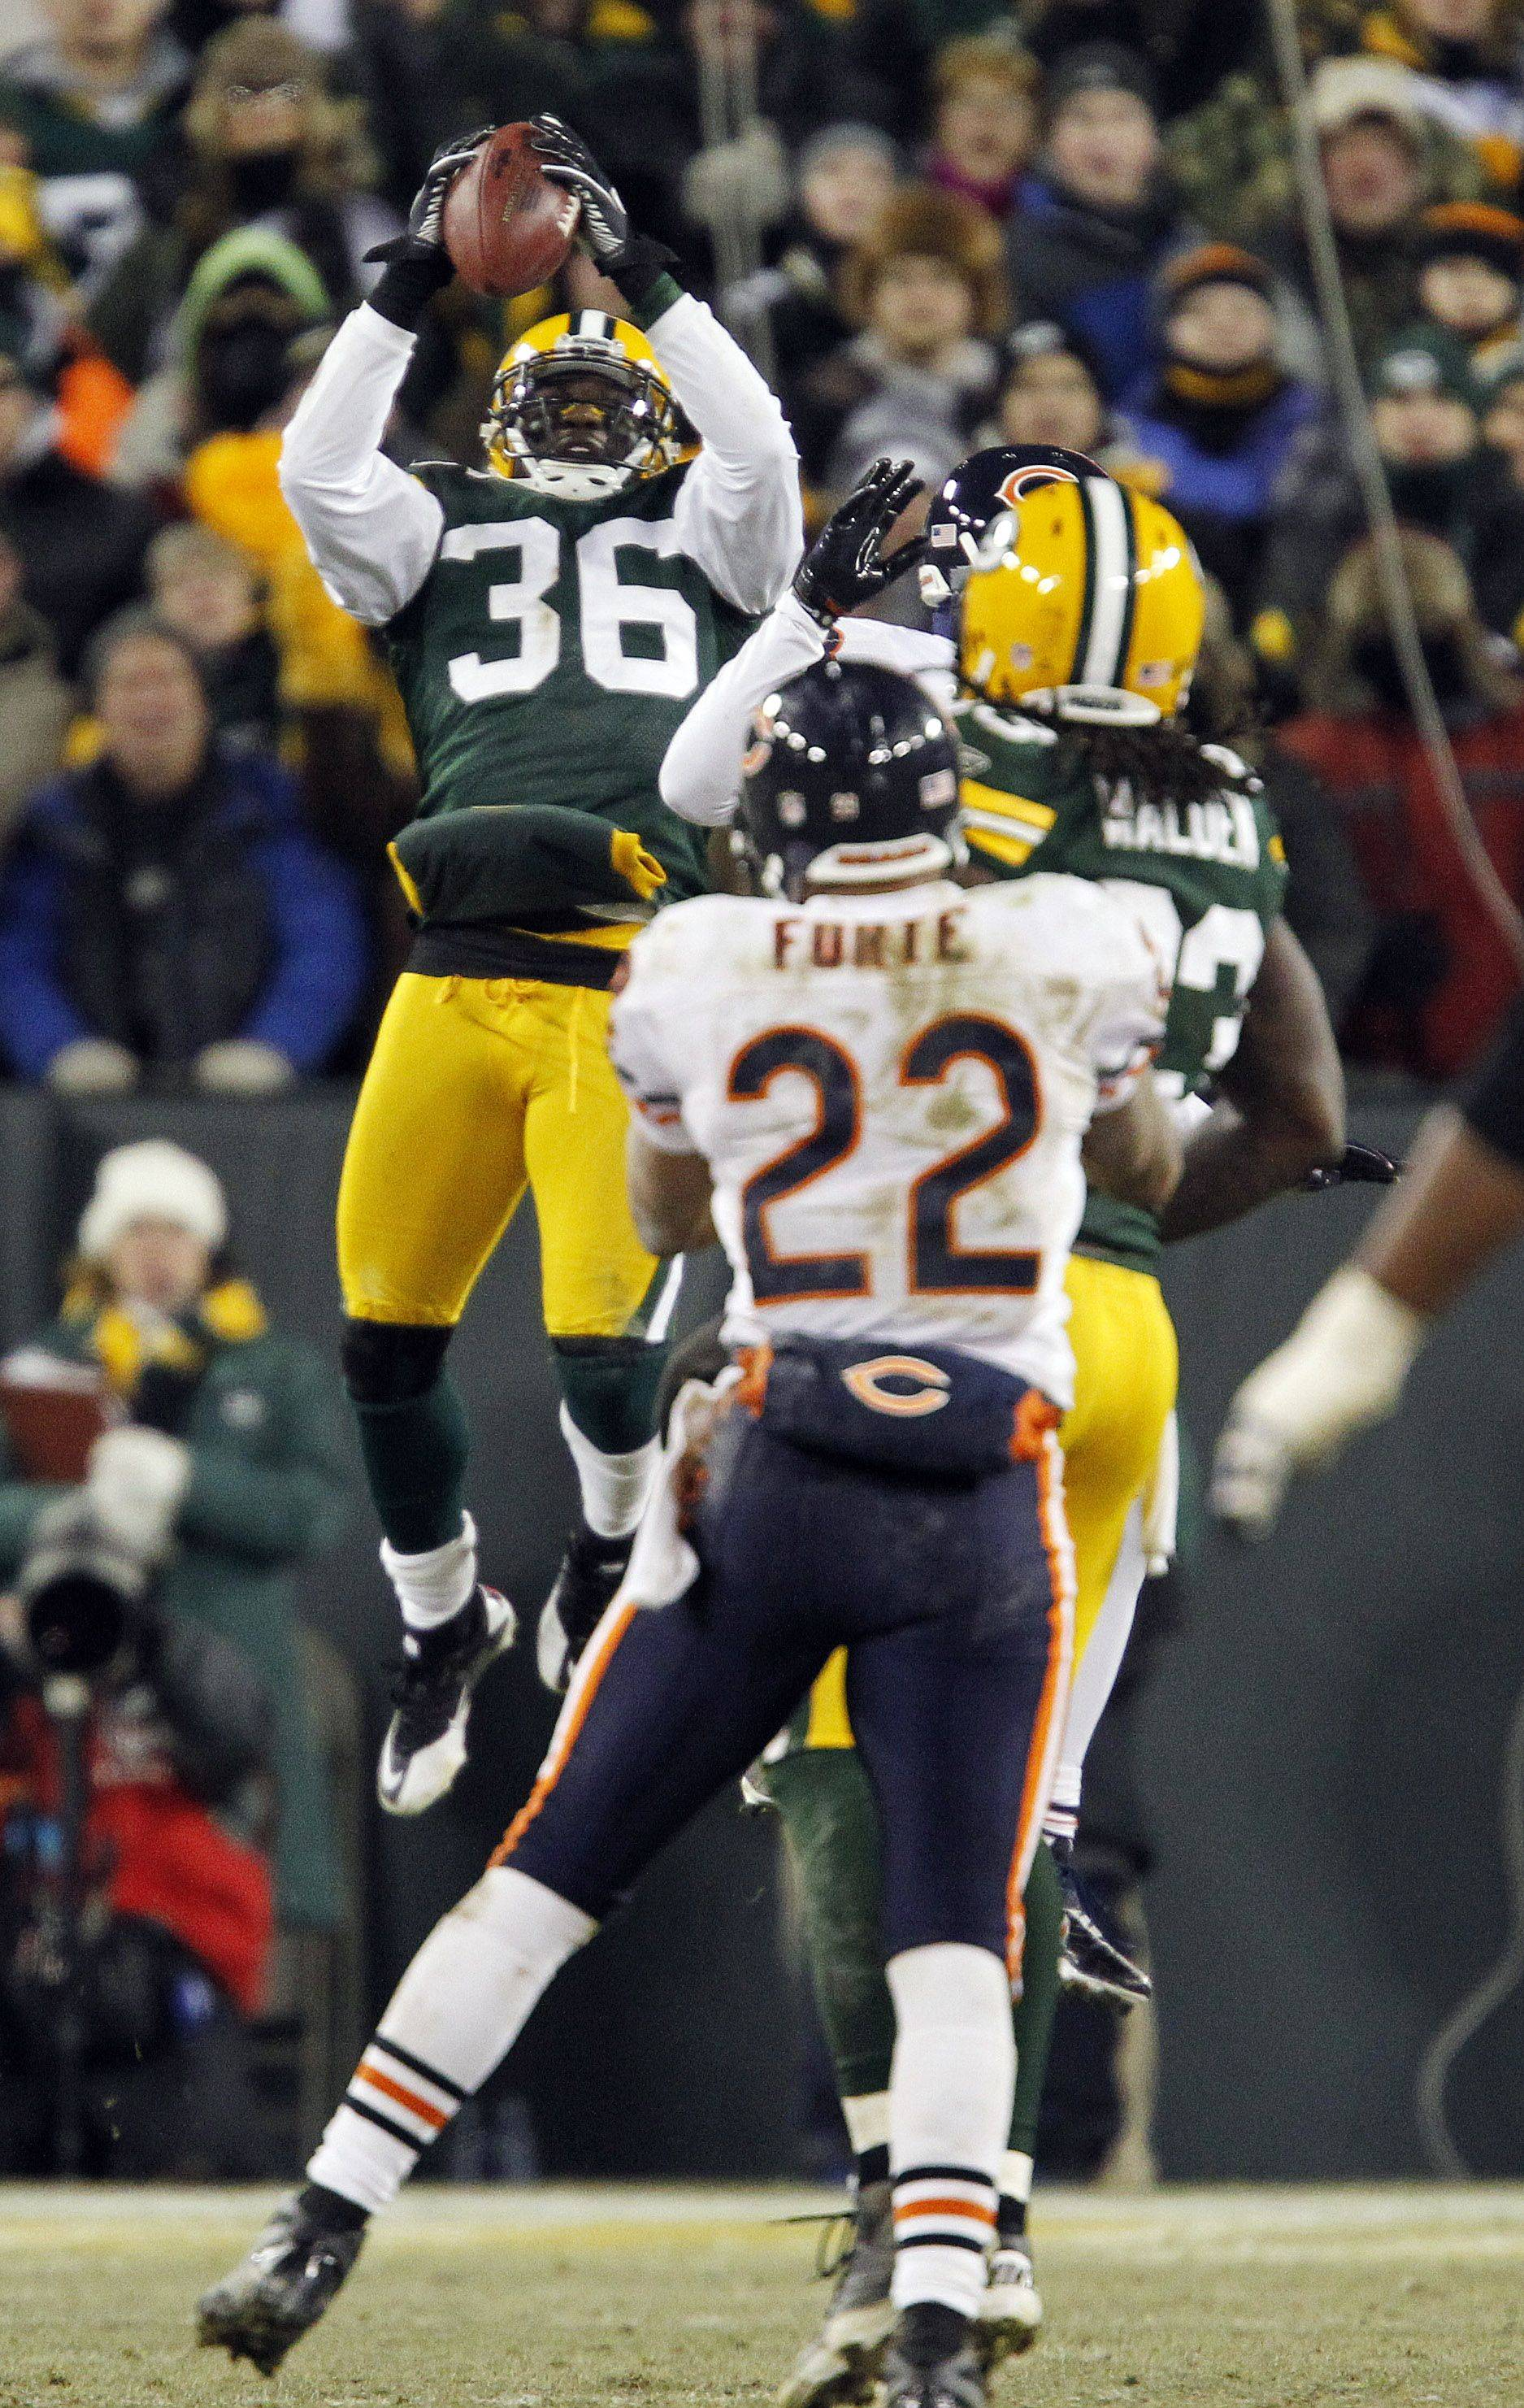 Green Bay Packers' Nick Collins intercepts a pass in the final seconds in the game against the Chicago Bears.